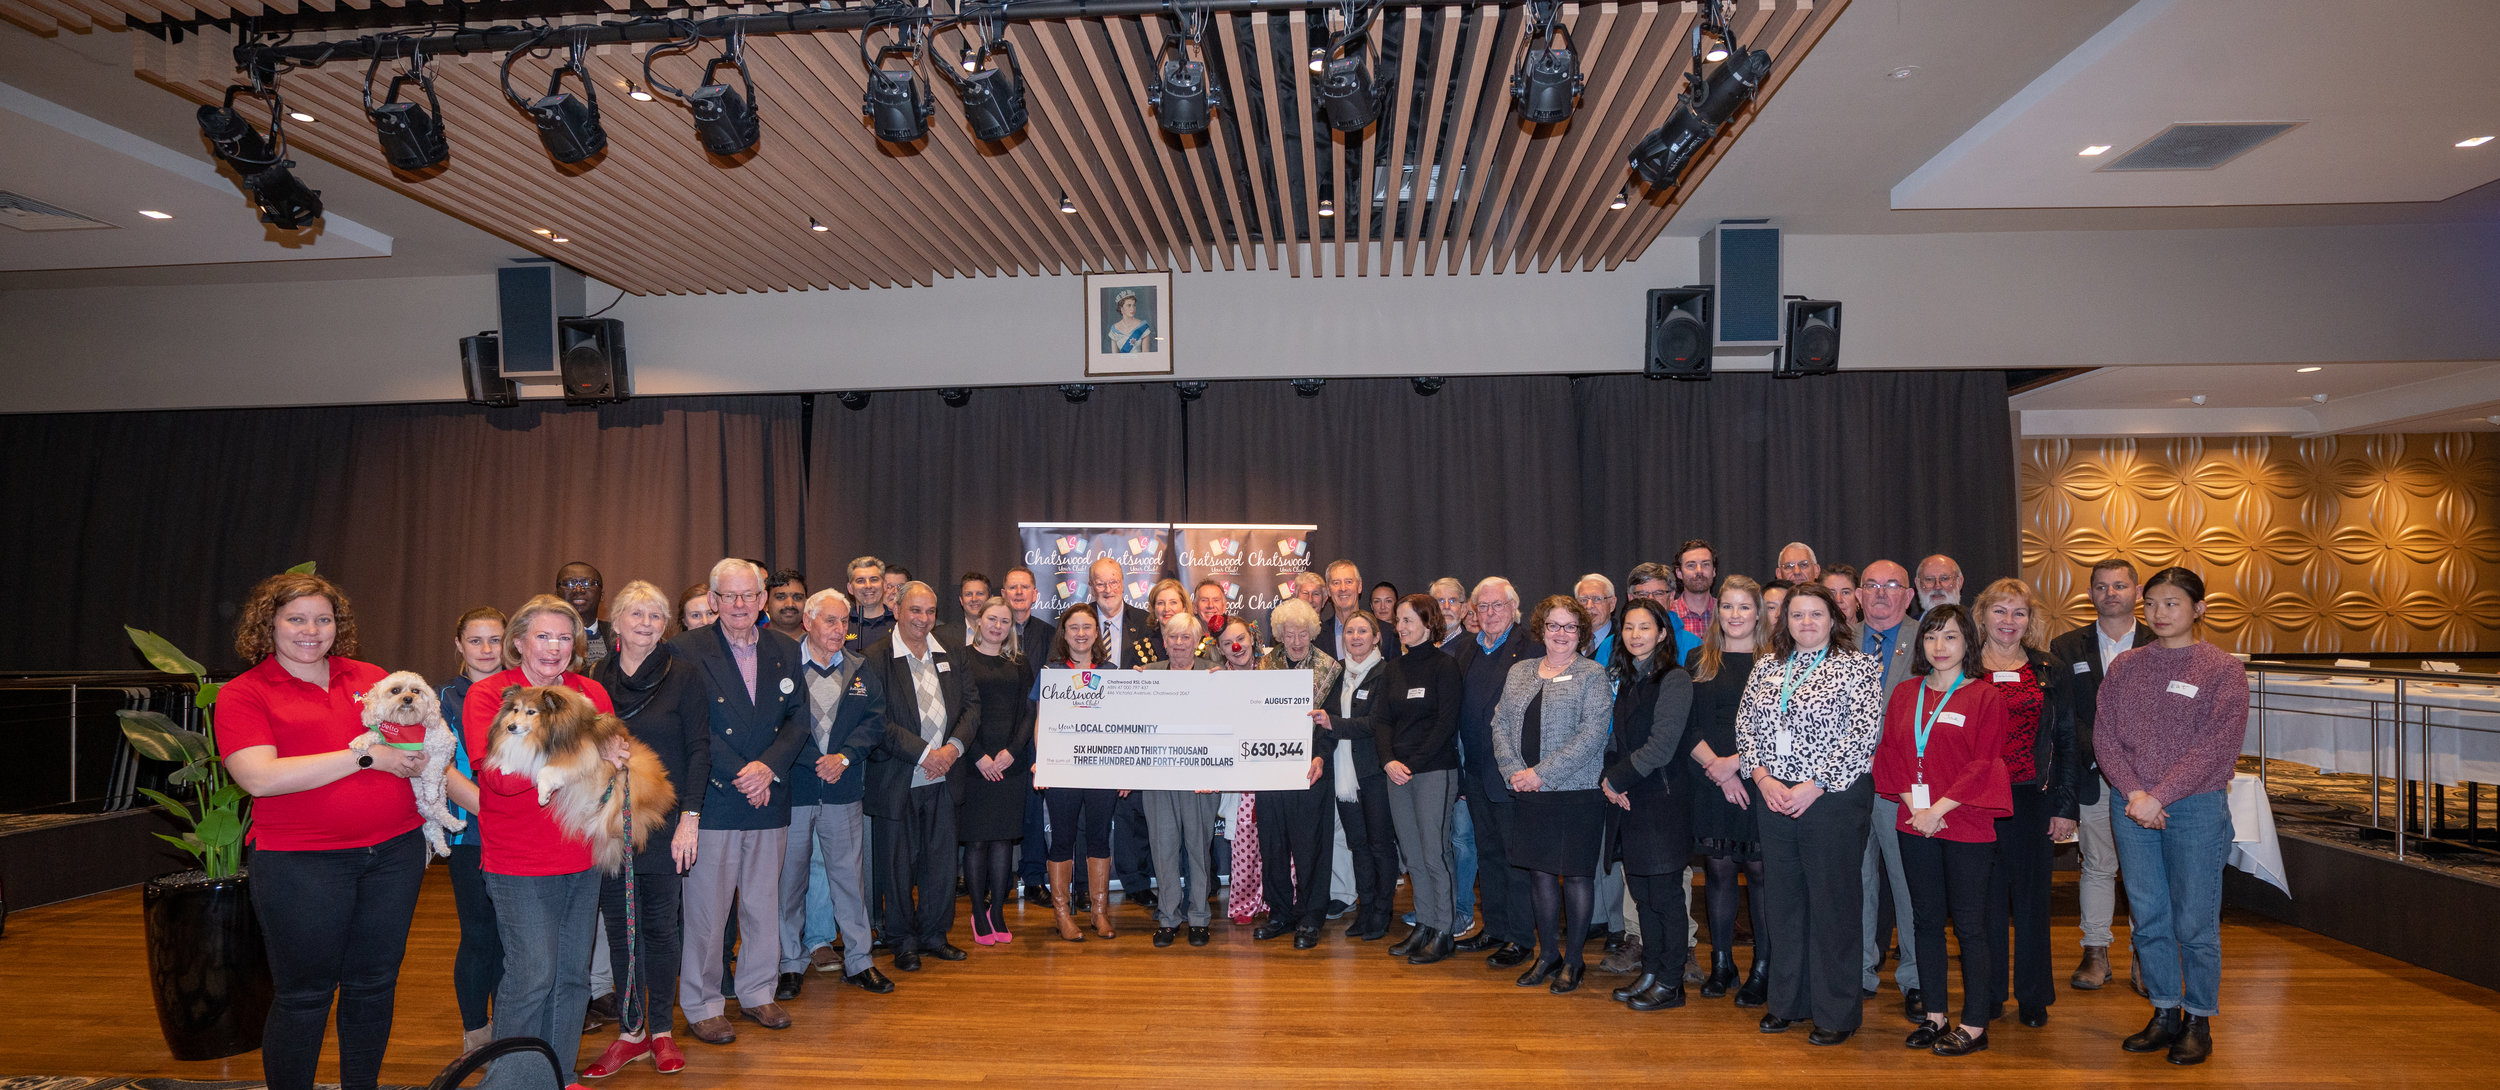 Chatswood RSL cheque presentation August 2019 v2.jpg